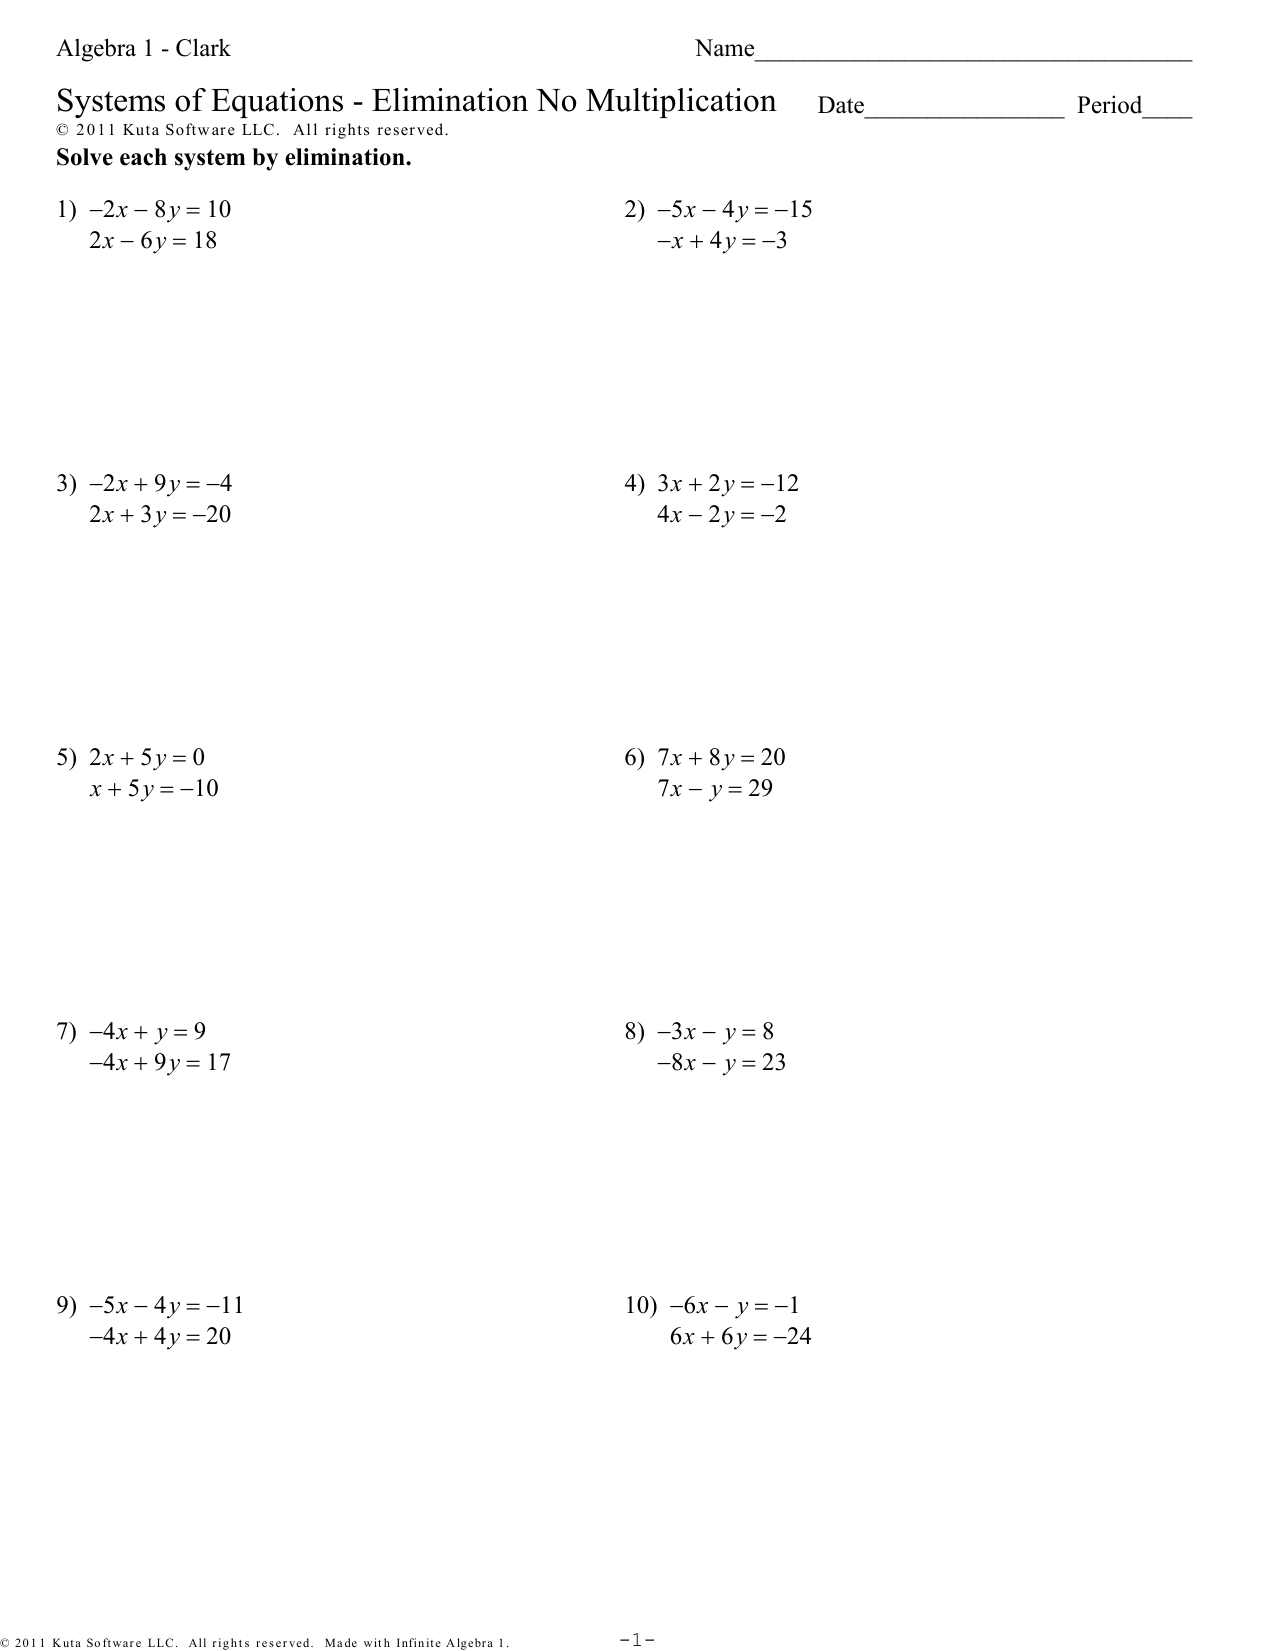 Algebra 1 Elimination Using Multiplication Worksheet